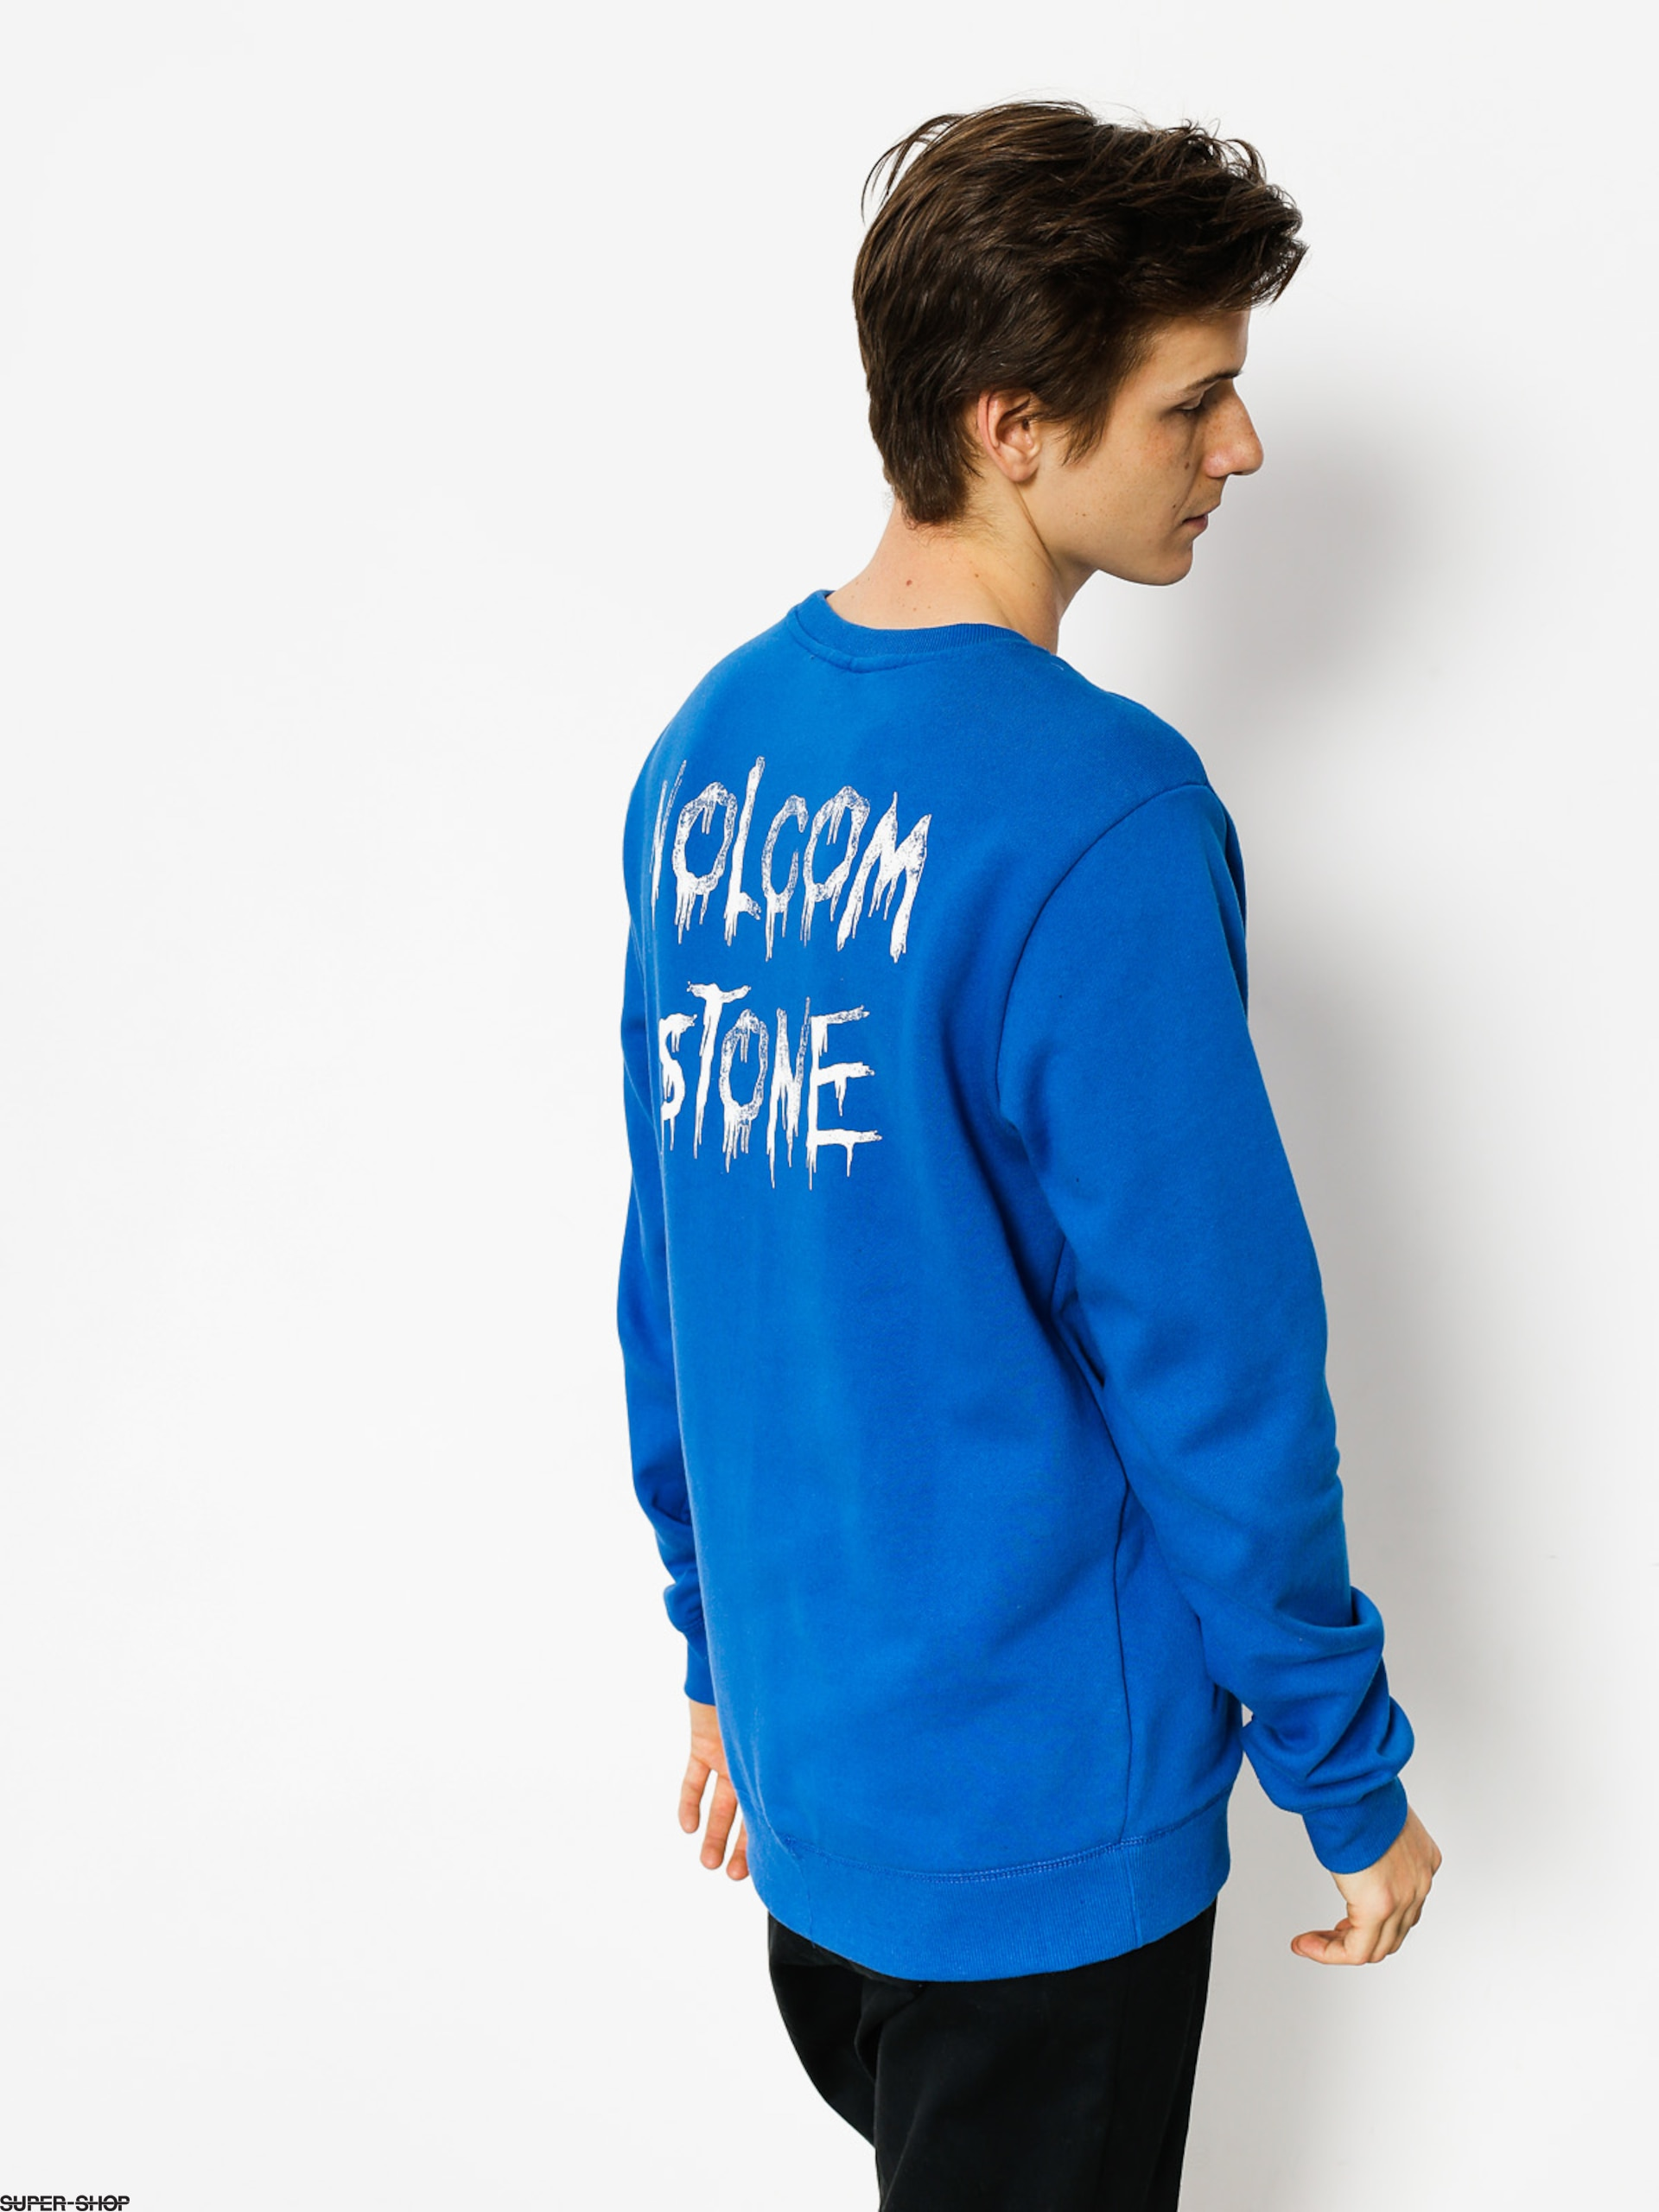 Volcom Sweatshirt Supply Stone Crew